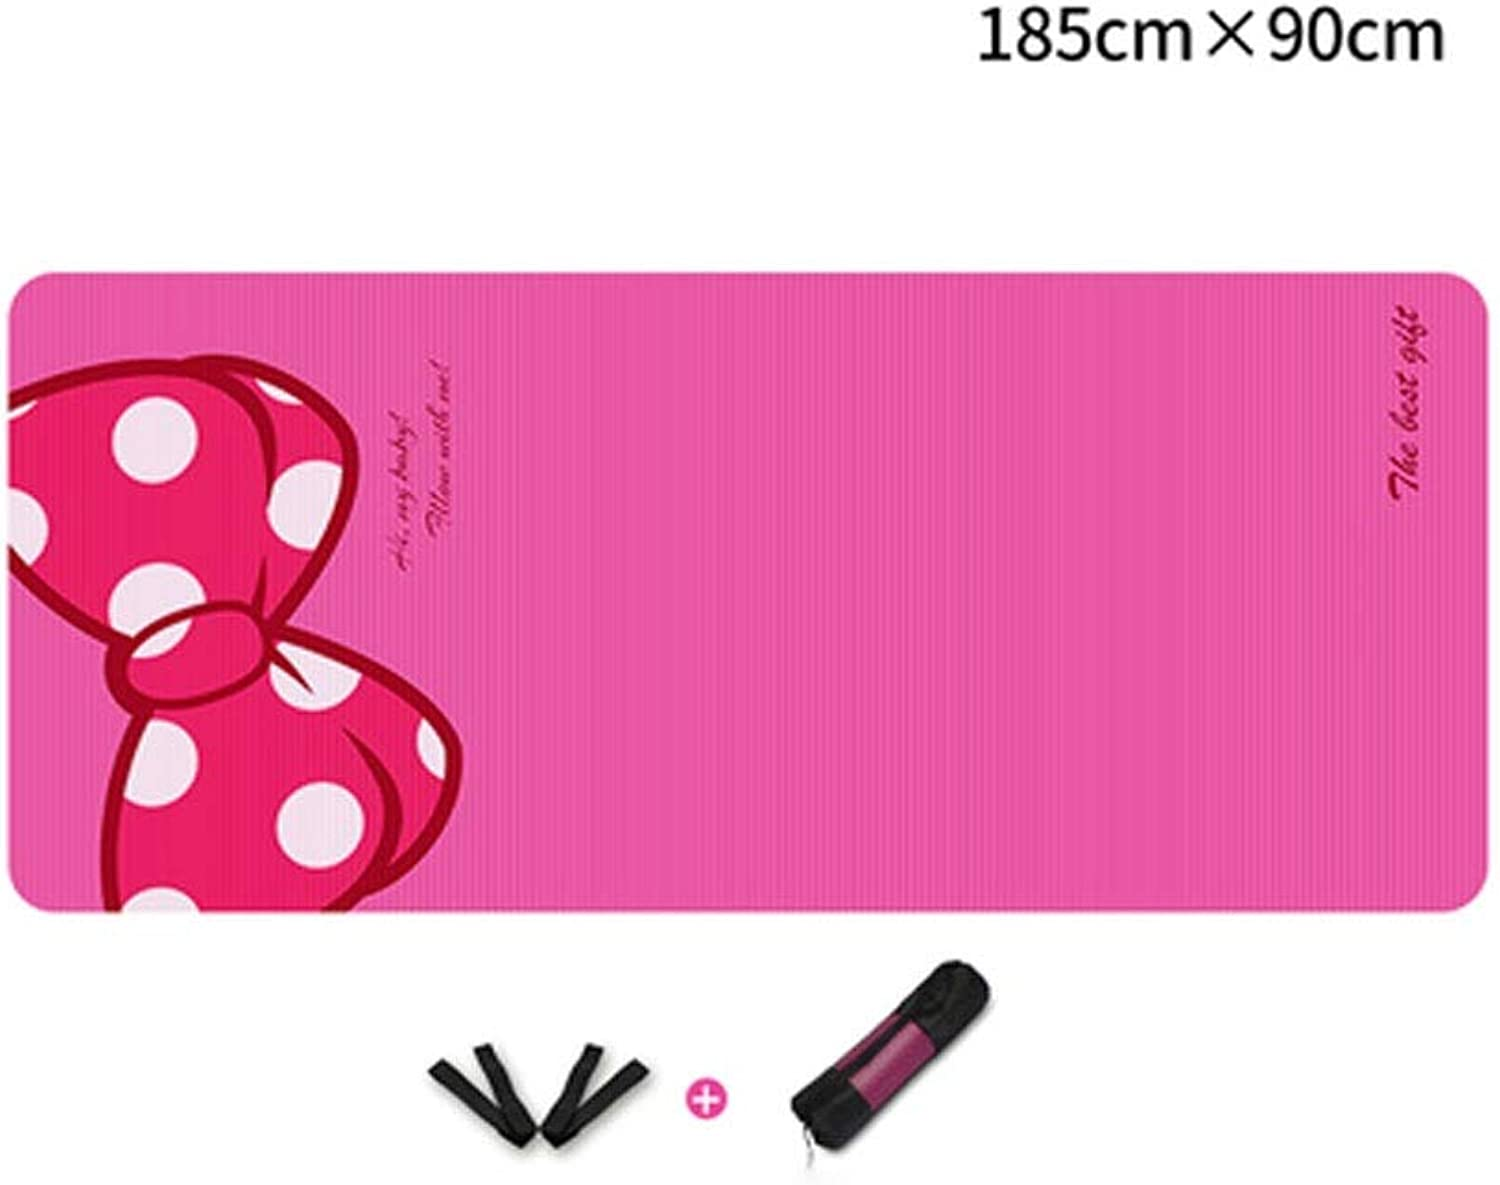 Fengshangshanghang Yoga Mat, Yoga Mat with Light Weight Features, Extra Thick Yoga Mat, Yoga Mat for Beginners, Gift (74  36 Inches, Thickness 1015mm) Thicken